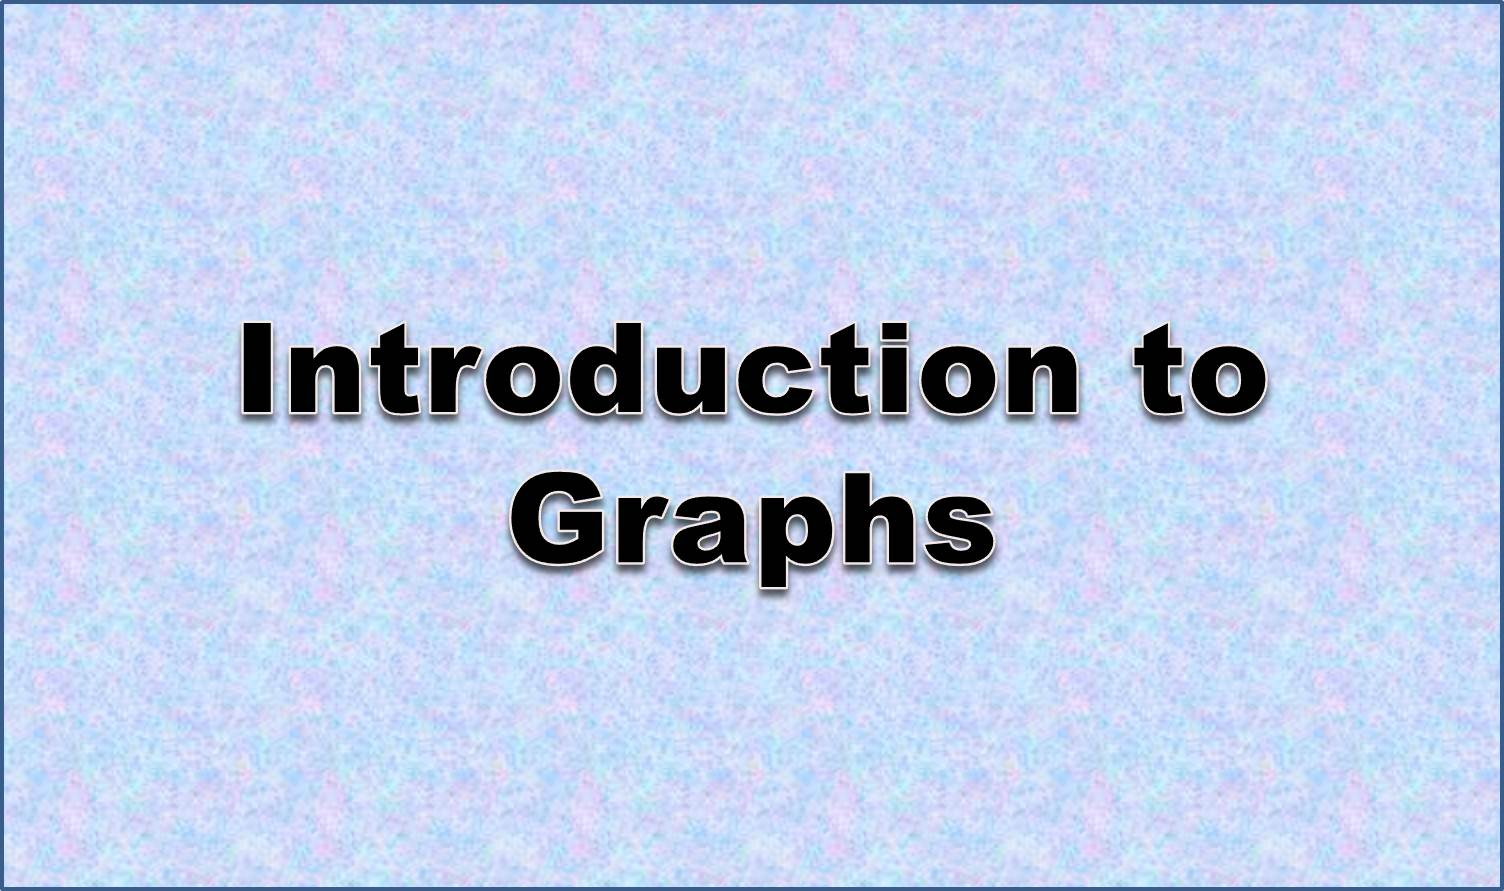 http://study.aisectonline.com/images/Linear graphs word problems-cats.jpg